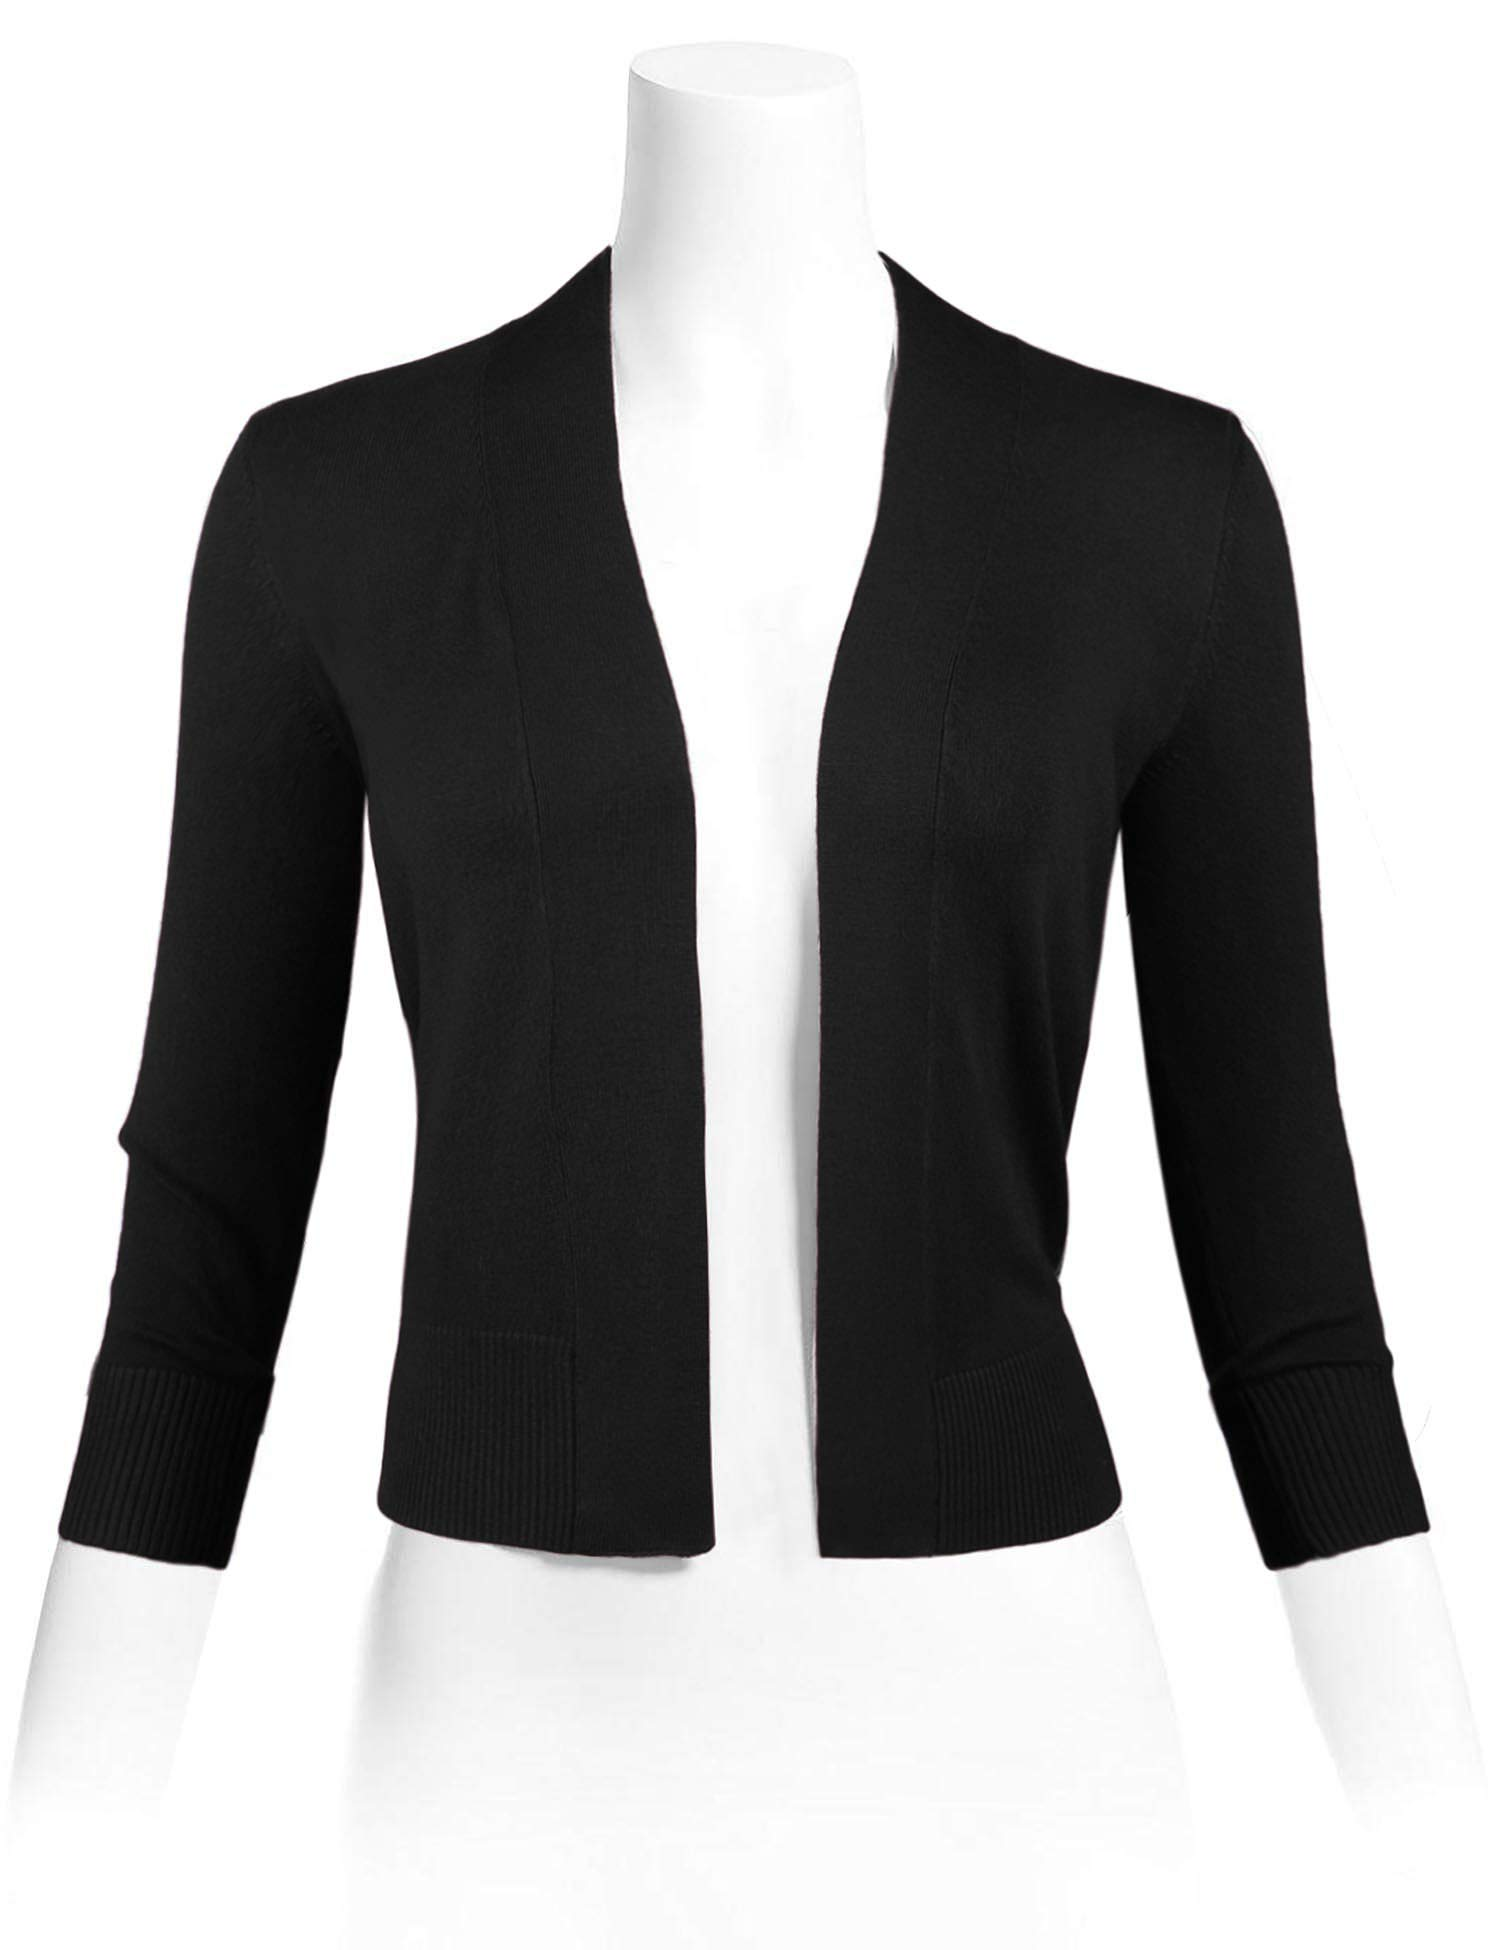 Sarin Mathews Womens 3/4 Sleeve Open Front Cropped Short Knit Cardigan Sweaters Black M